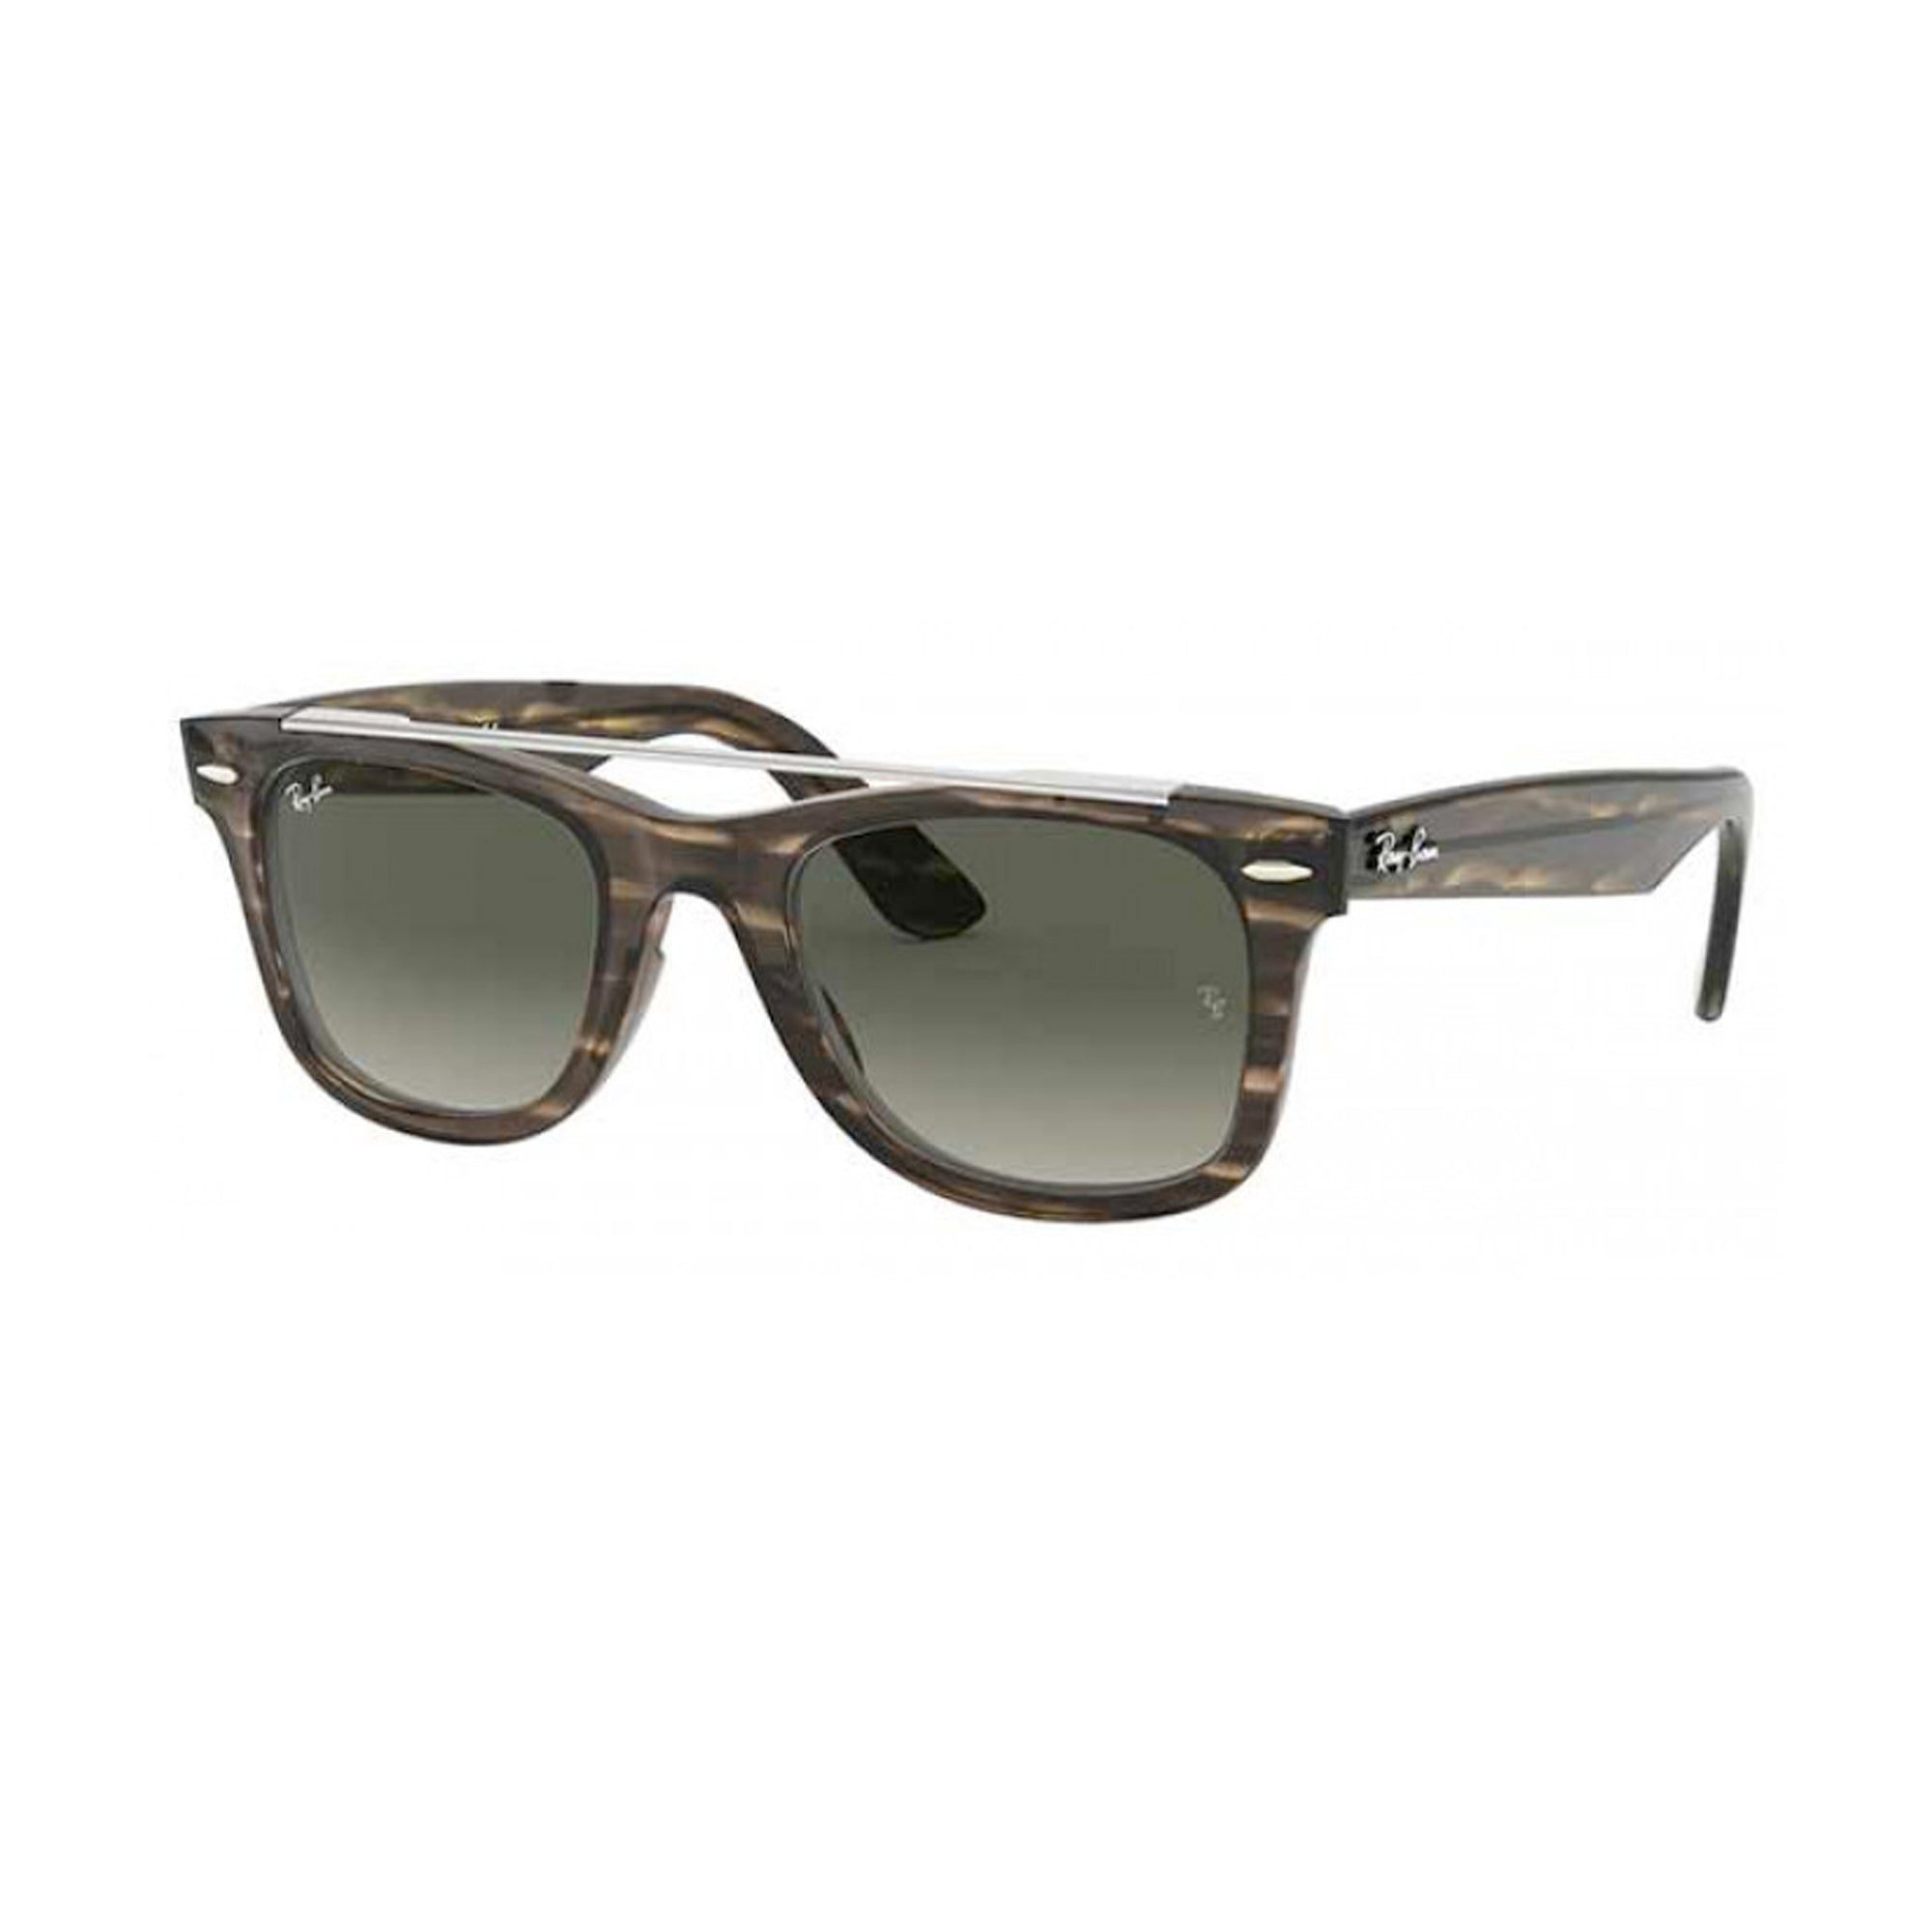 Ray-Ban Wayfarer Double Bridge Sunglasses